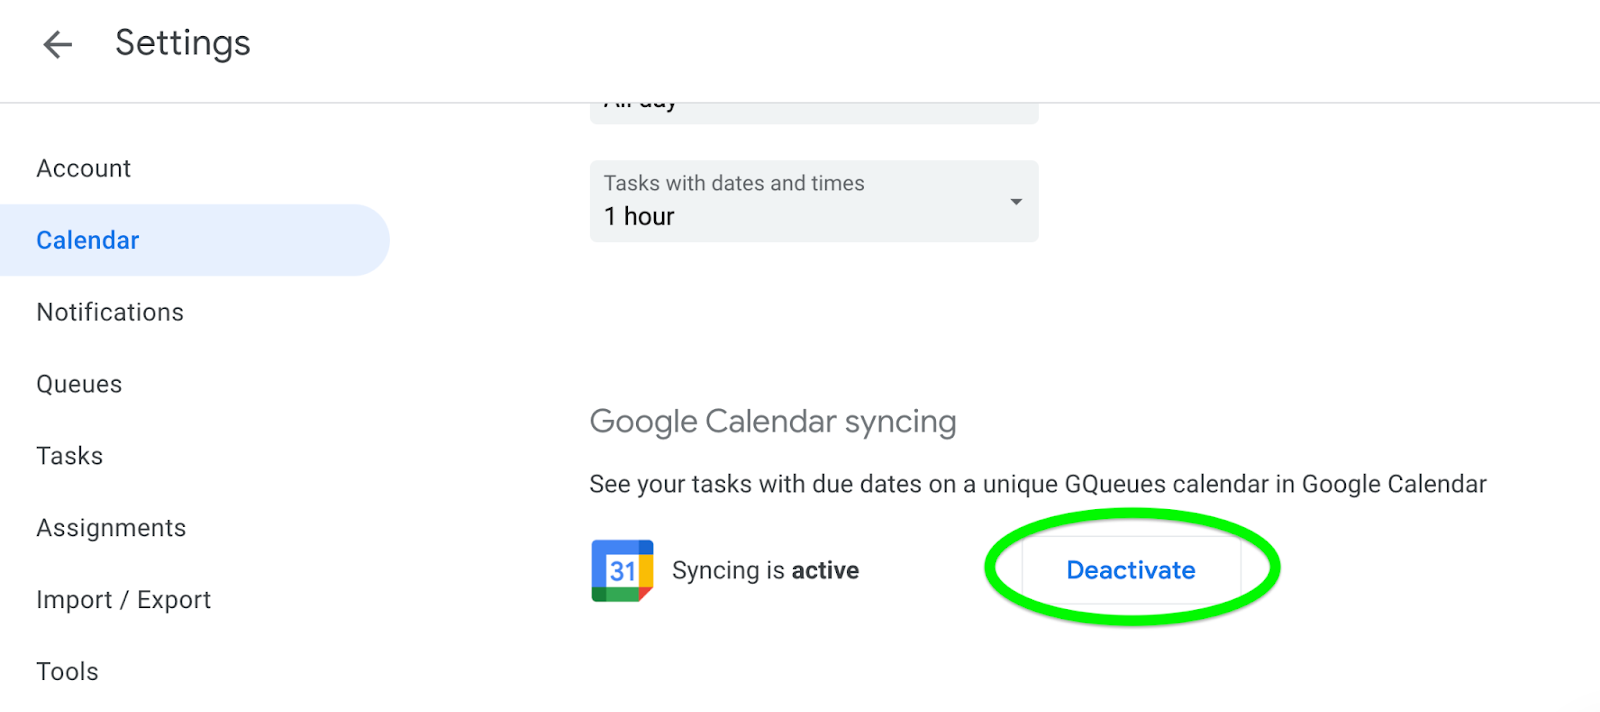 Deactivate calendar syncing for your account from your GQueues settings